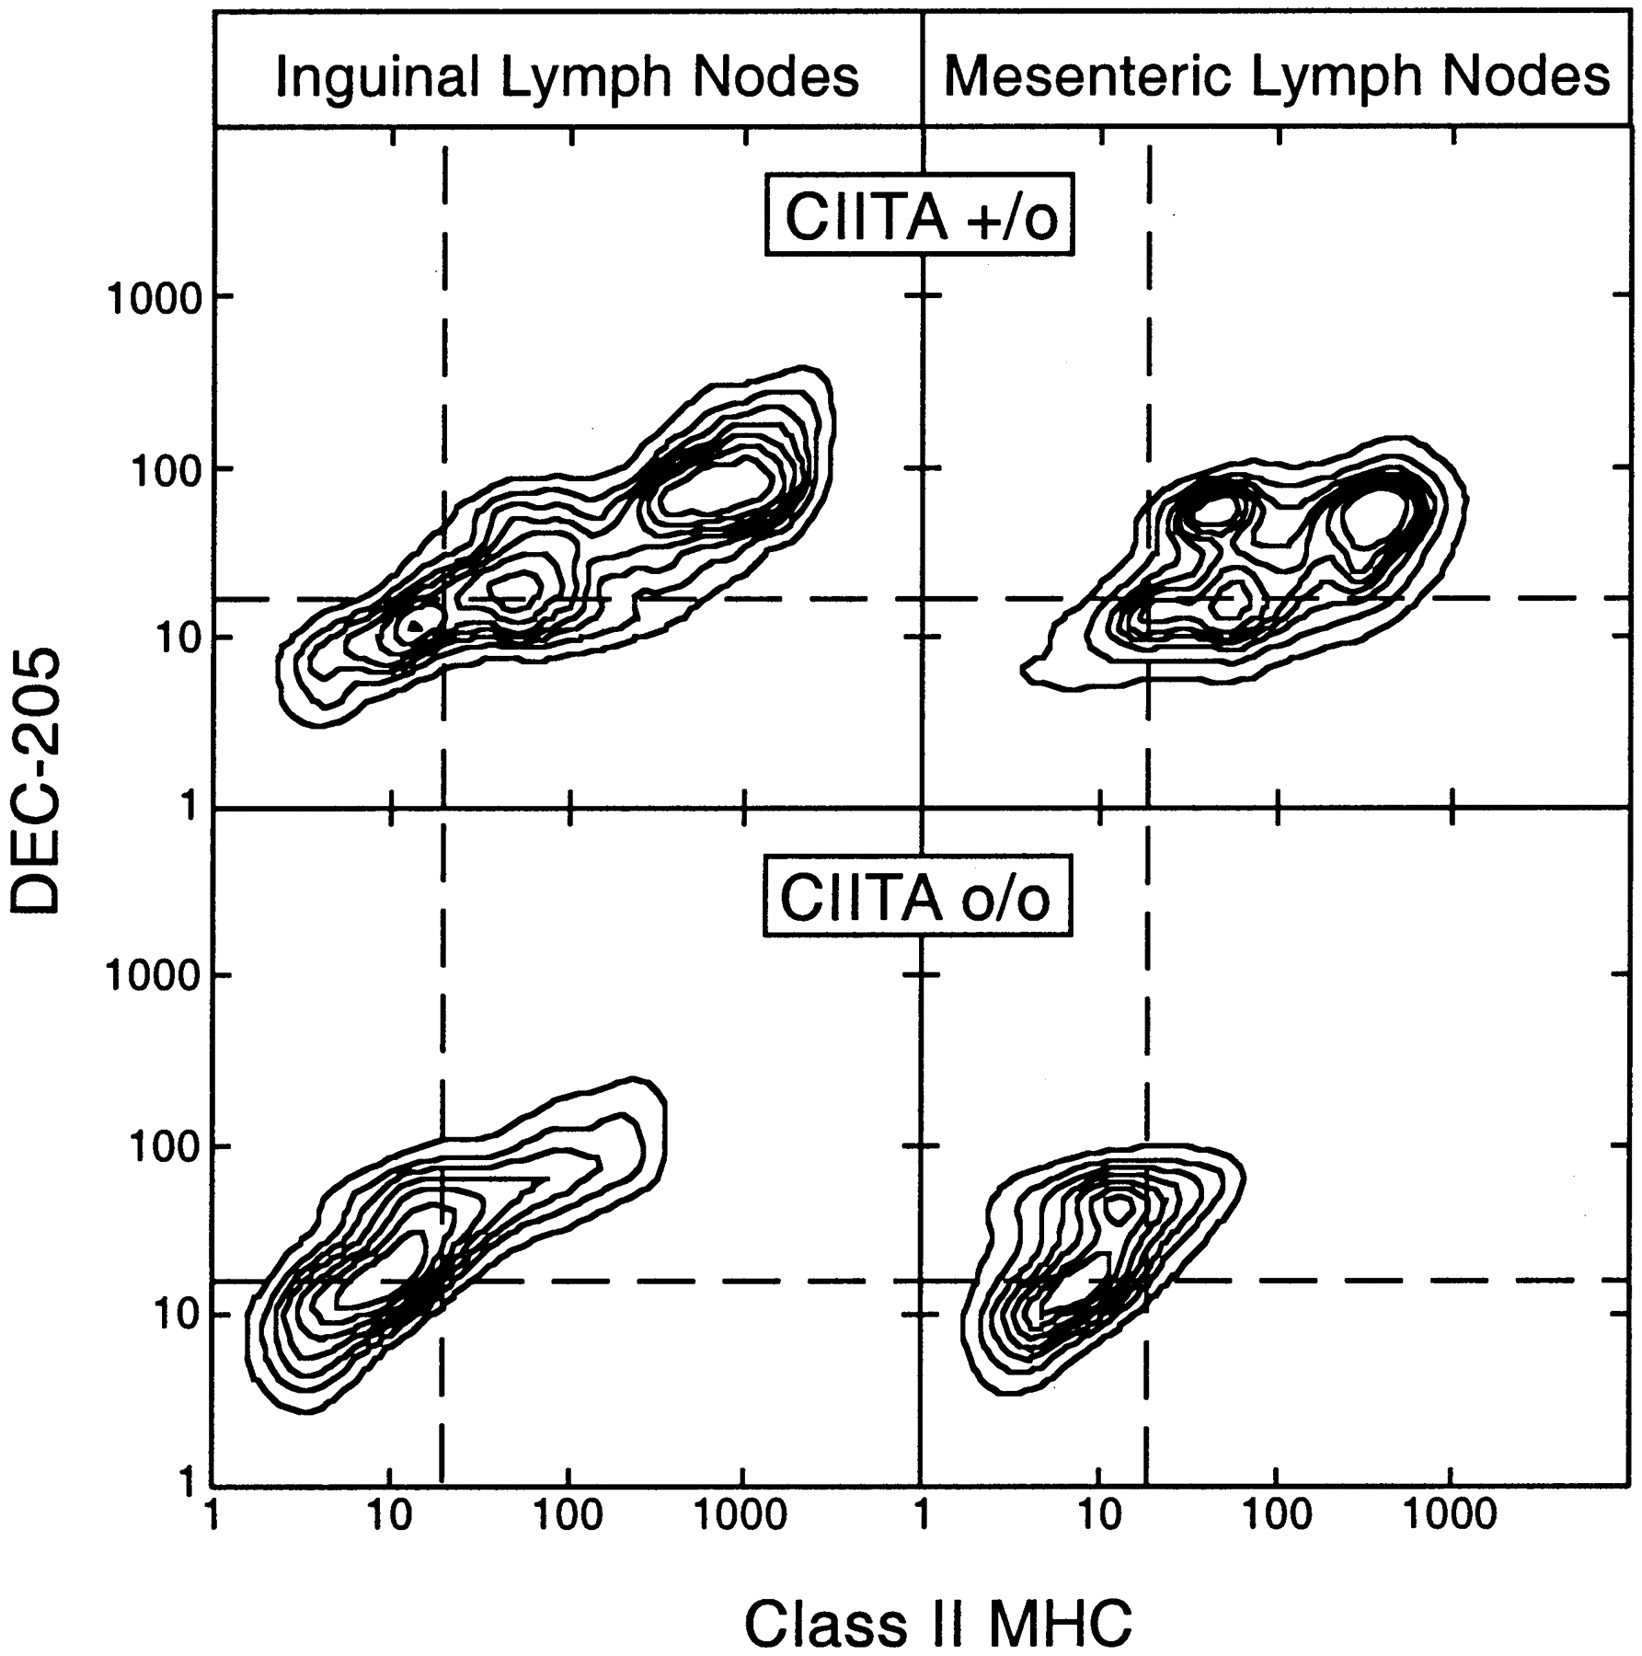 The Dendritic Cell Populations Of Mouse Lymph Nodes The Journal Of